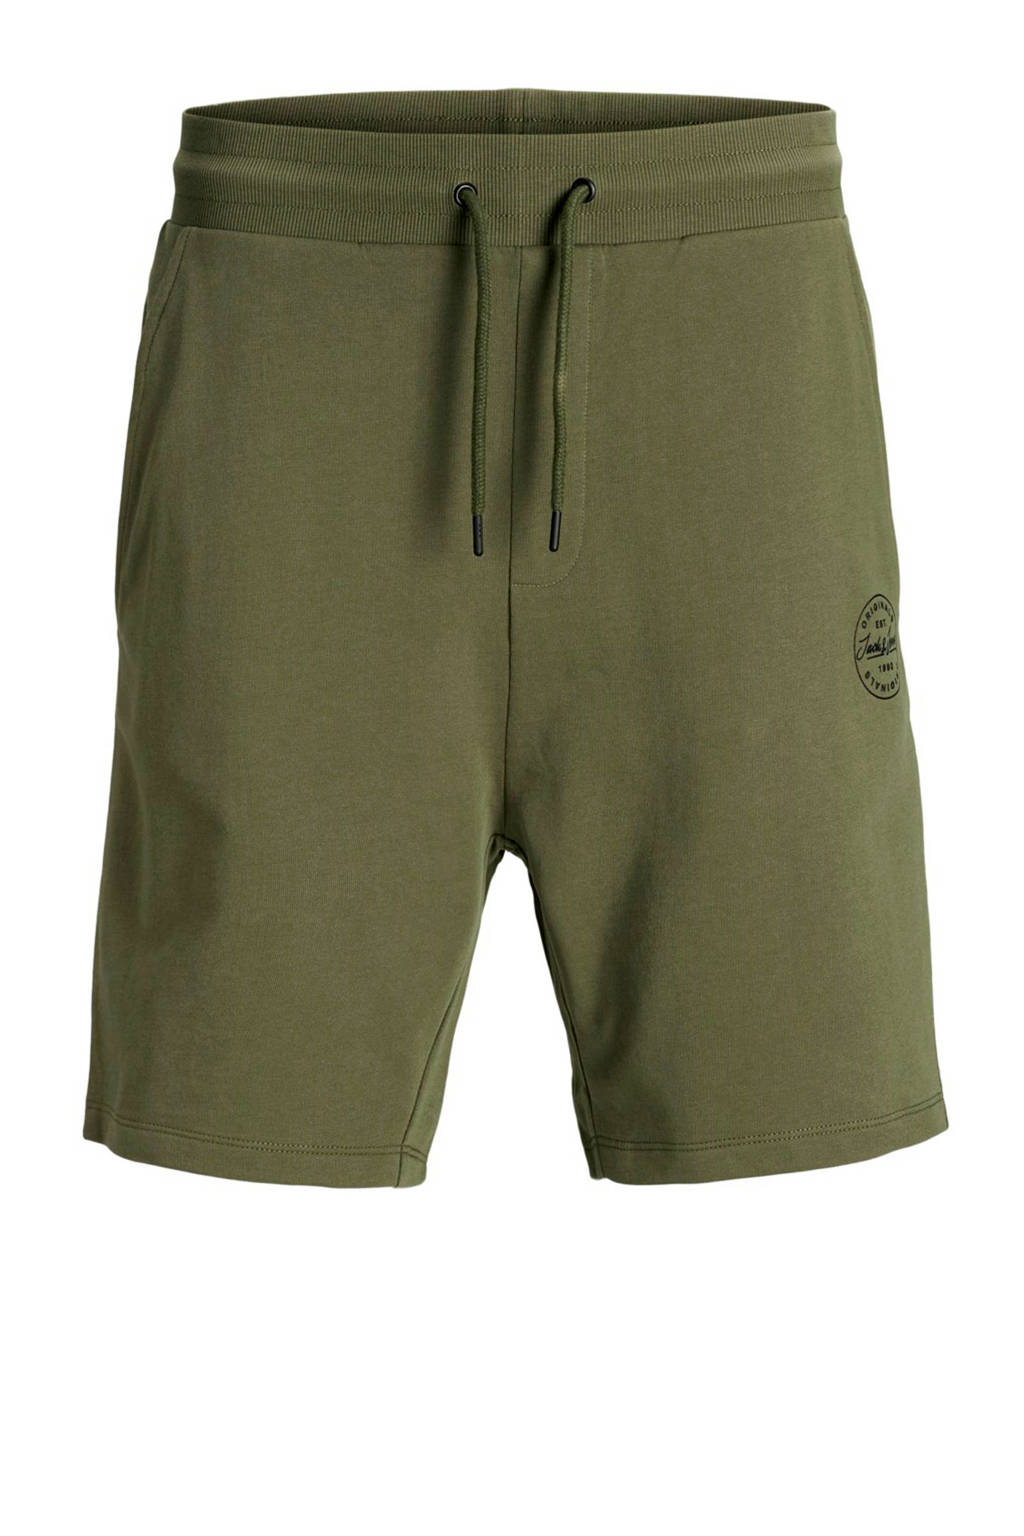 JACK & JONES JUNIOR sweatshort Shark met logo groen, Groen